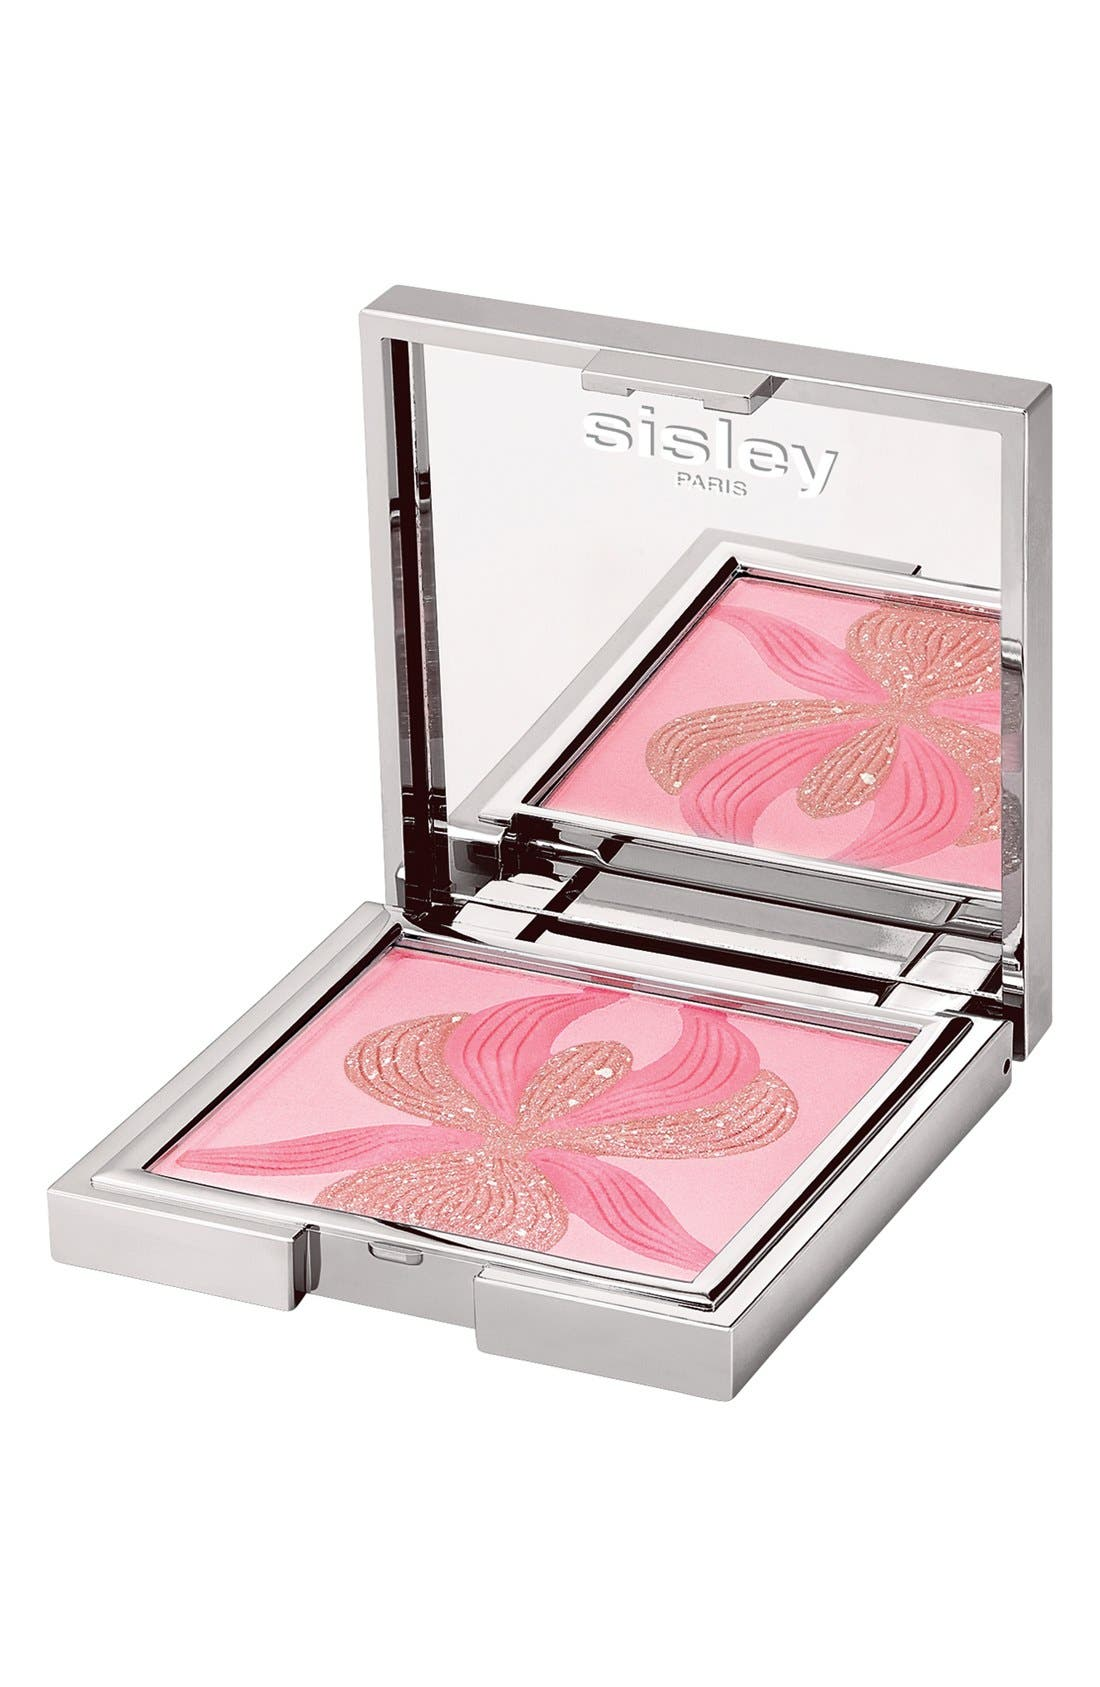 Sisley Paris 'L'Orchidée' Highlighter Blush